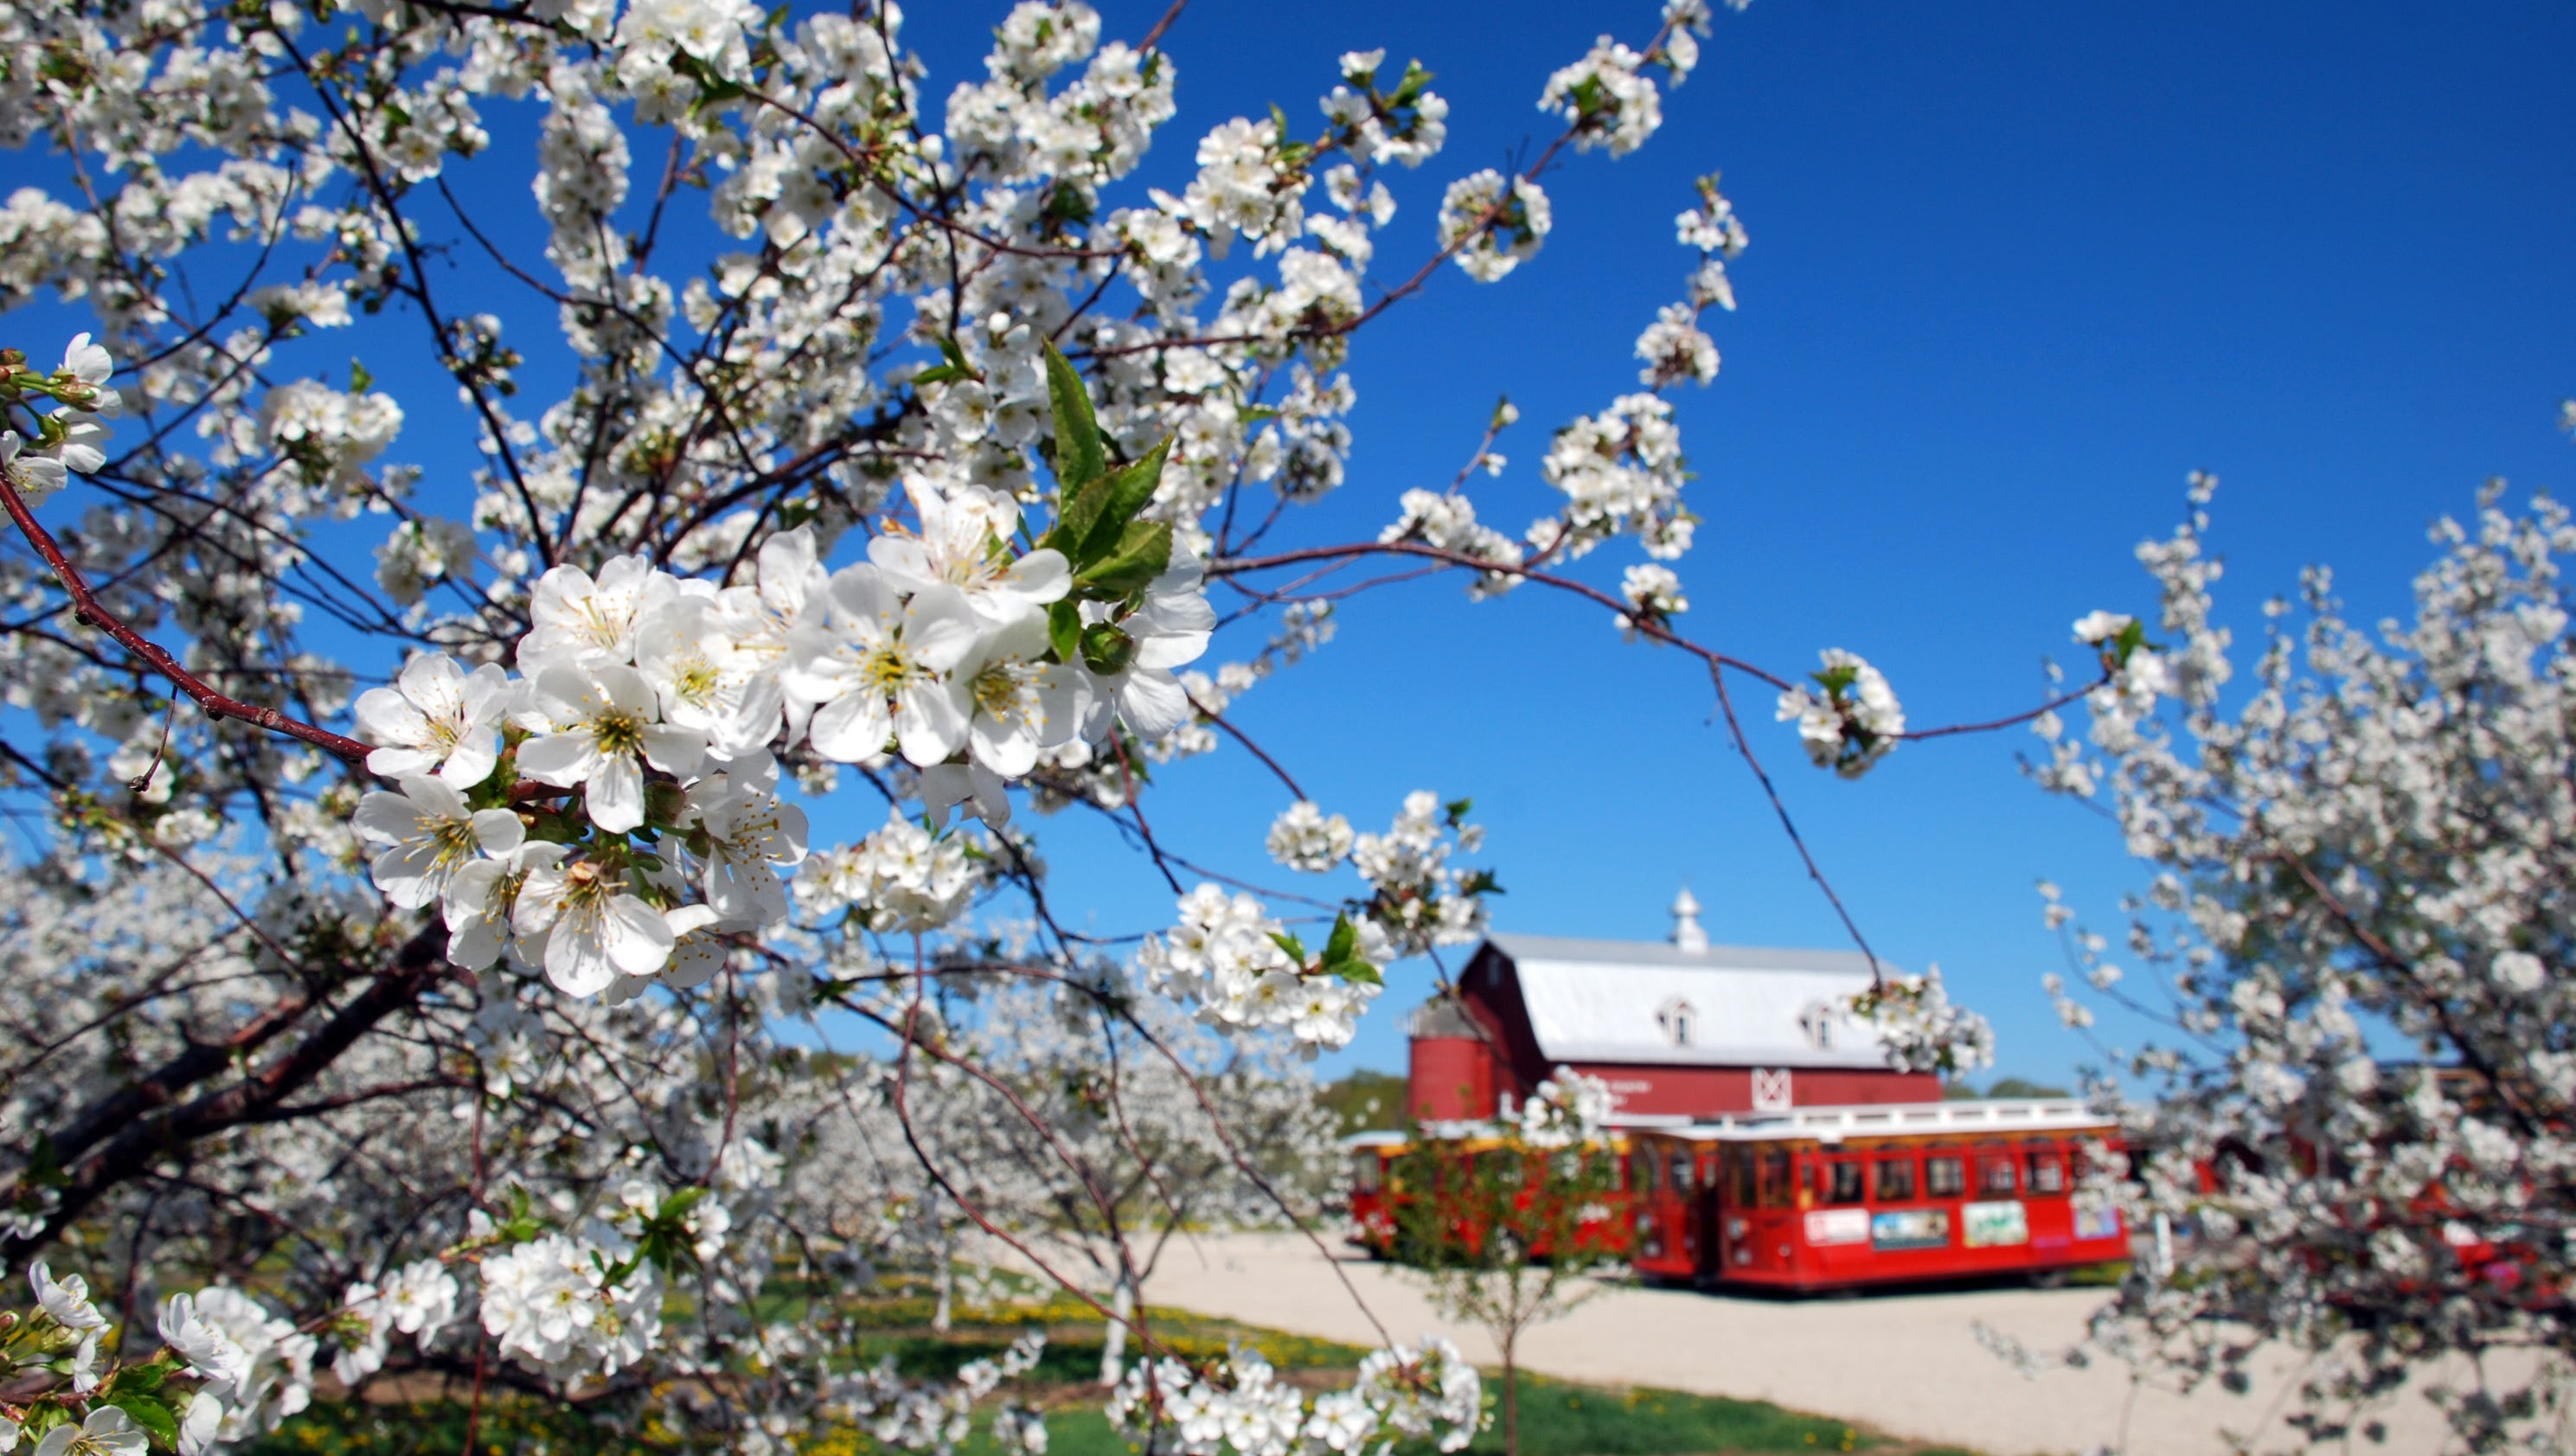 Door County S Cherry Blossoms Put On A Dazzling Display